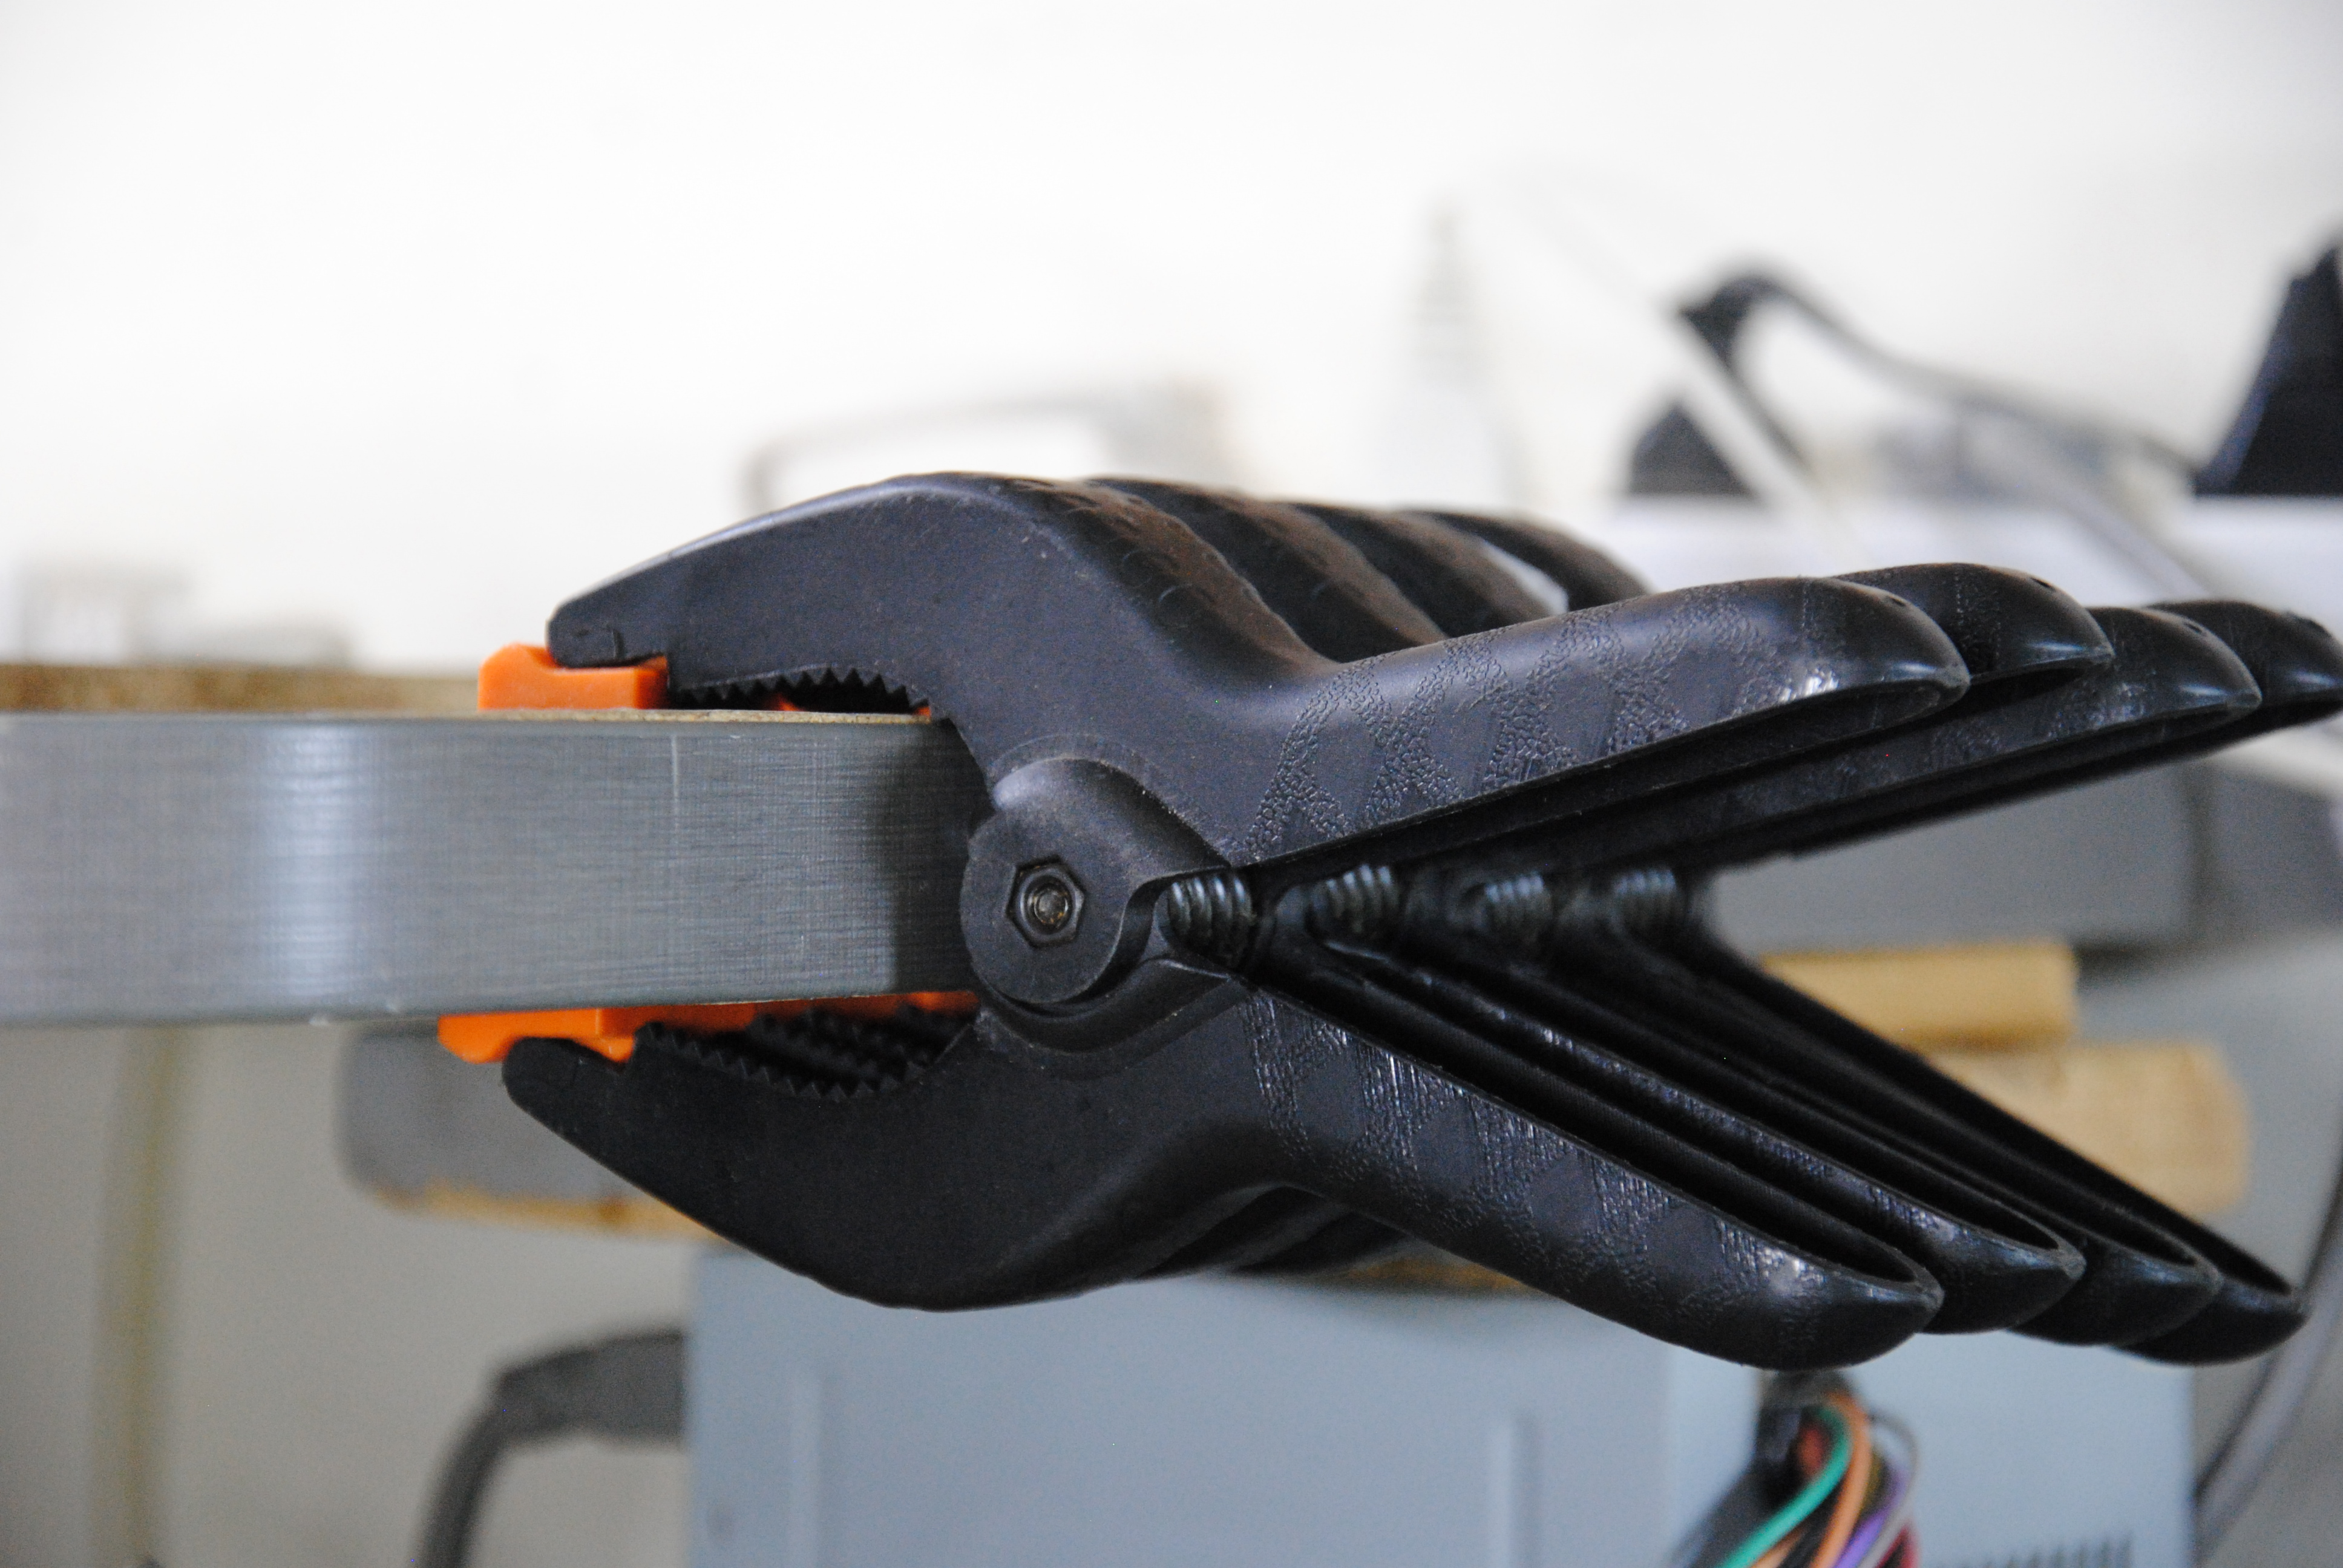 Picture of Clamp Clamps to the Edge of Your Workbench